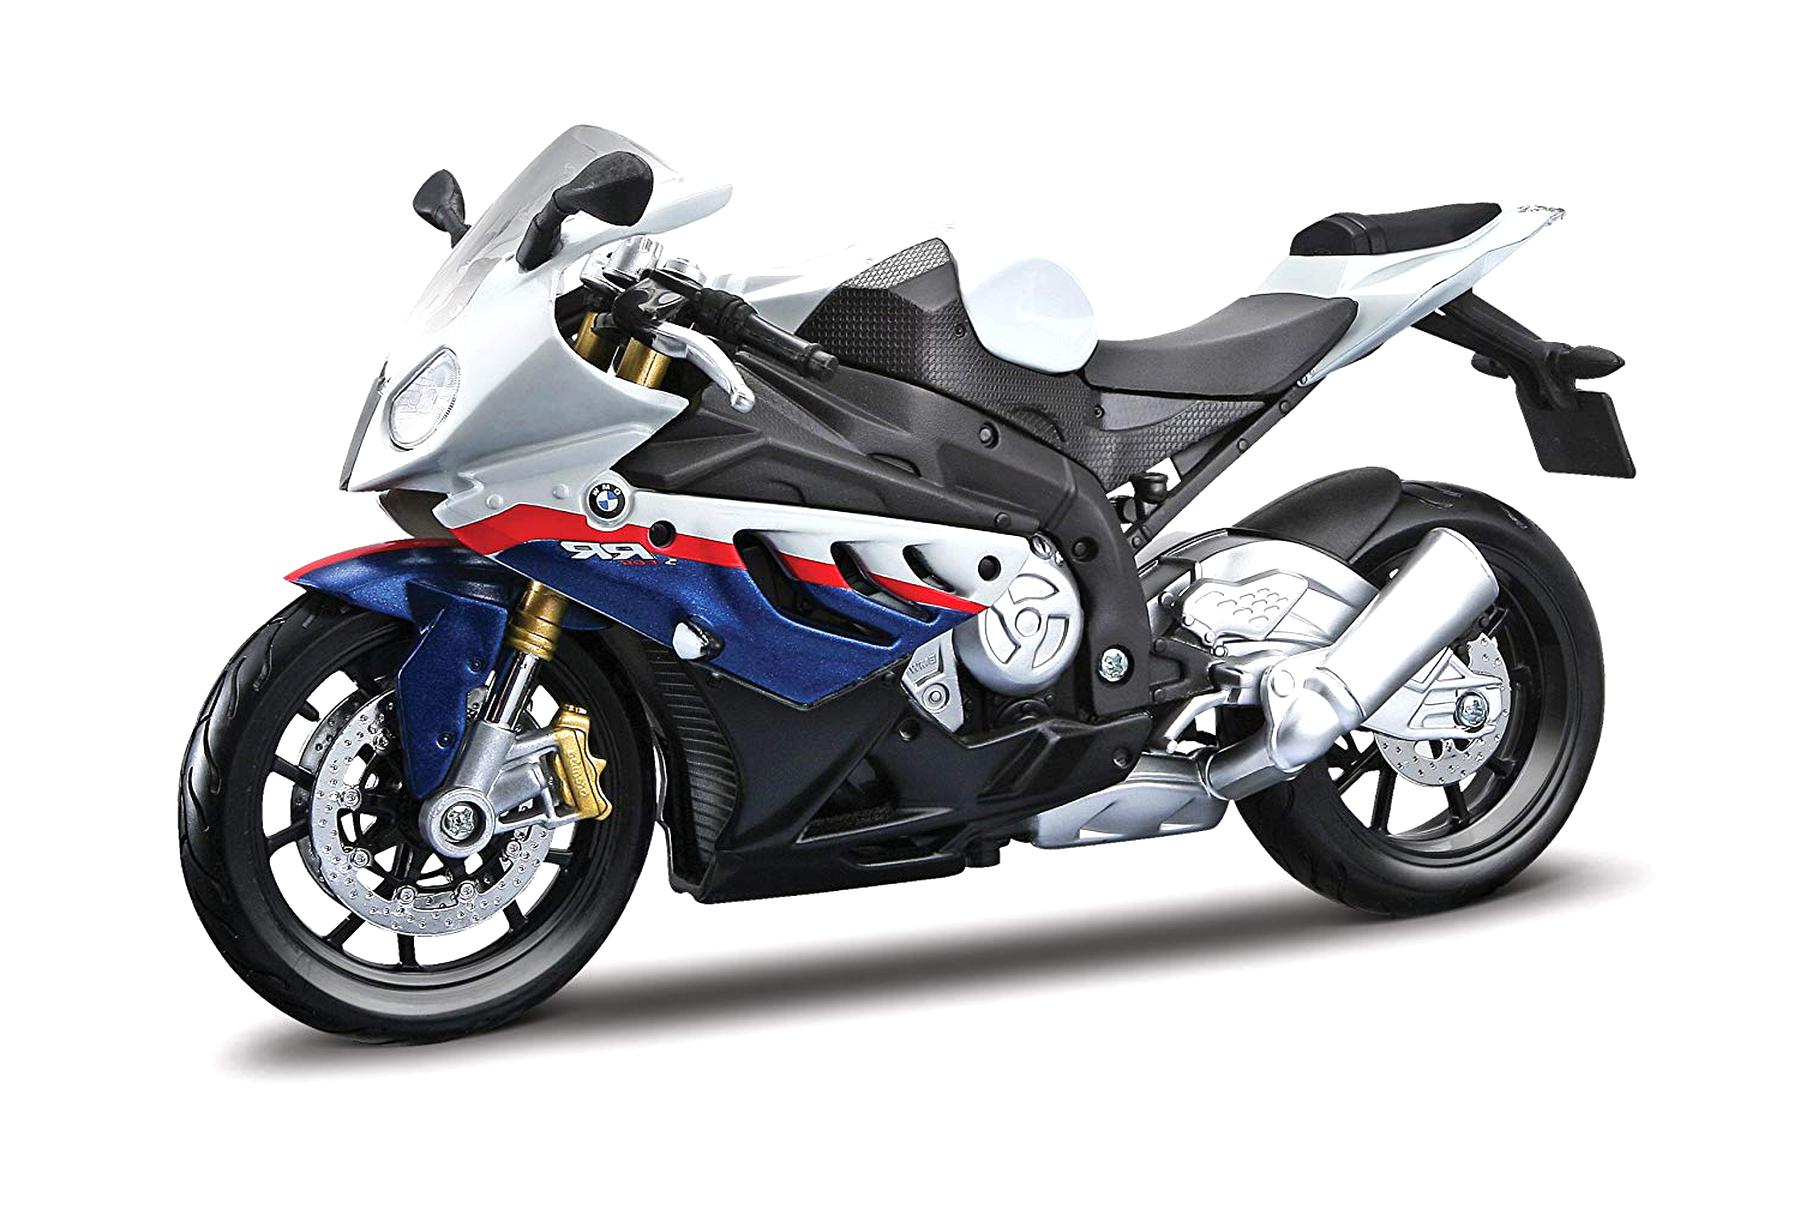 s1000rr for sale